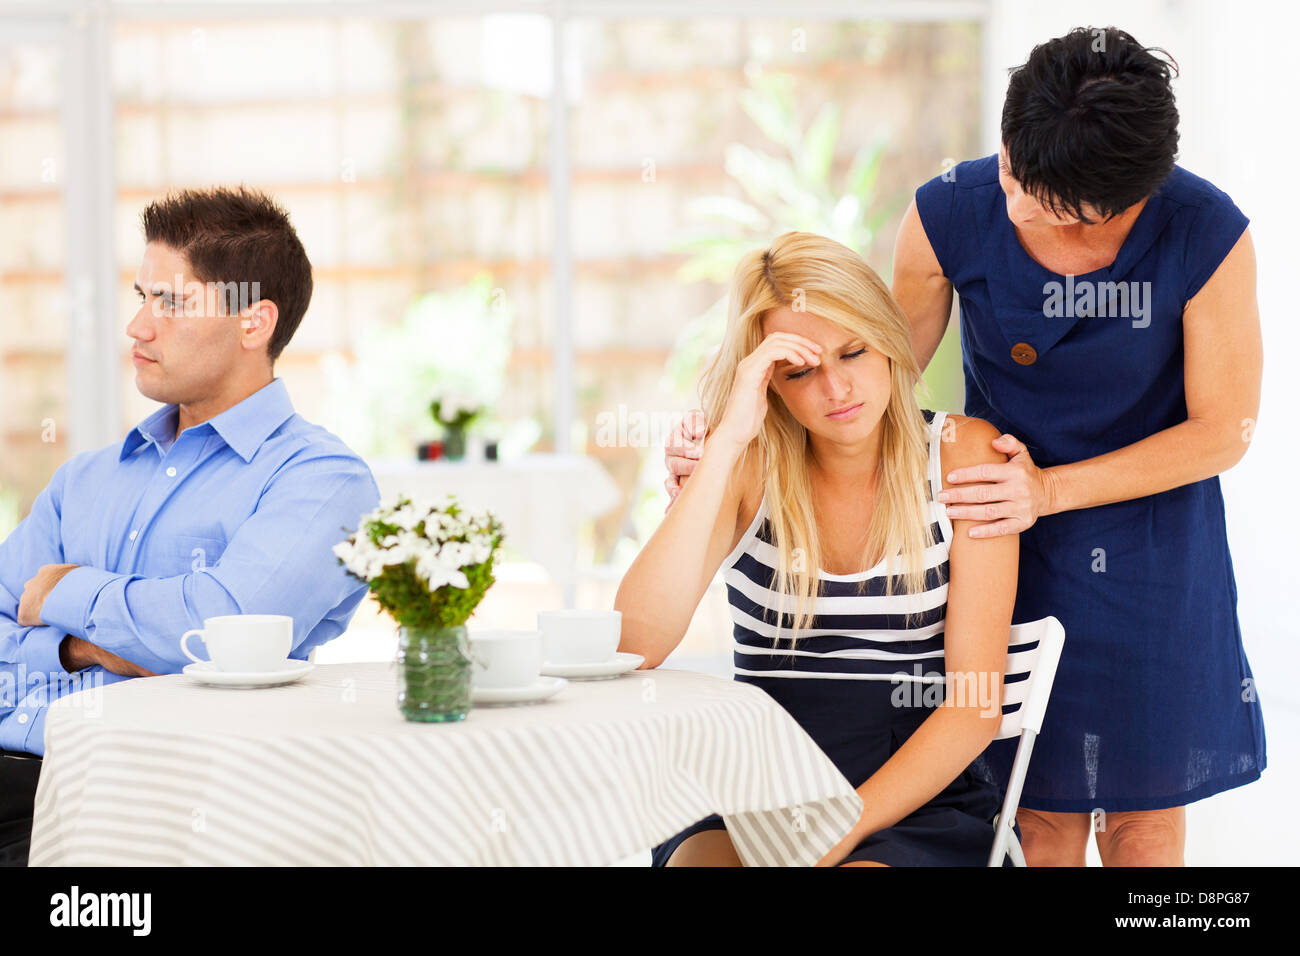 mother comforting daughter when she has relationship difficulties - Stock Image